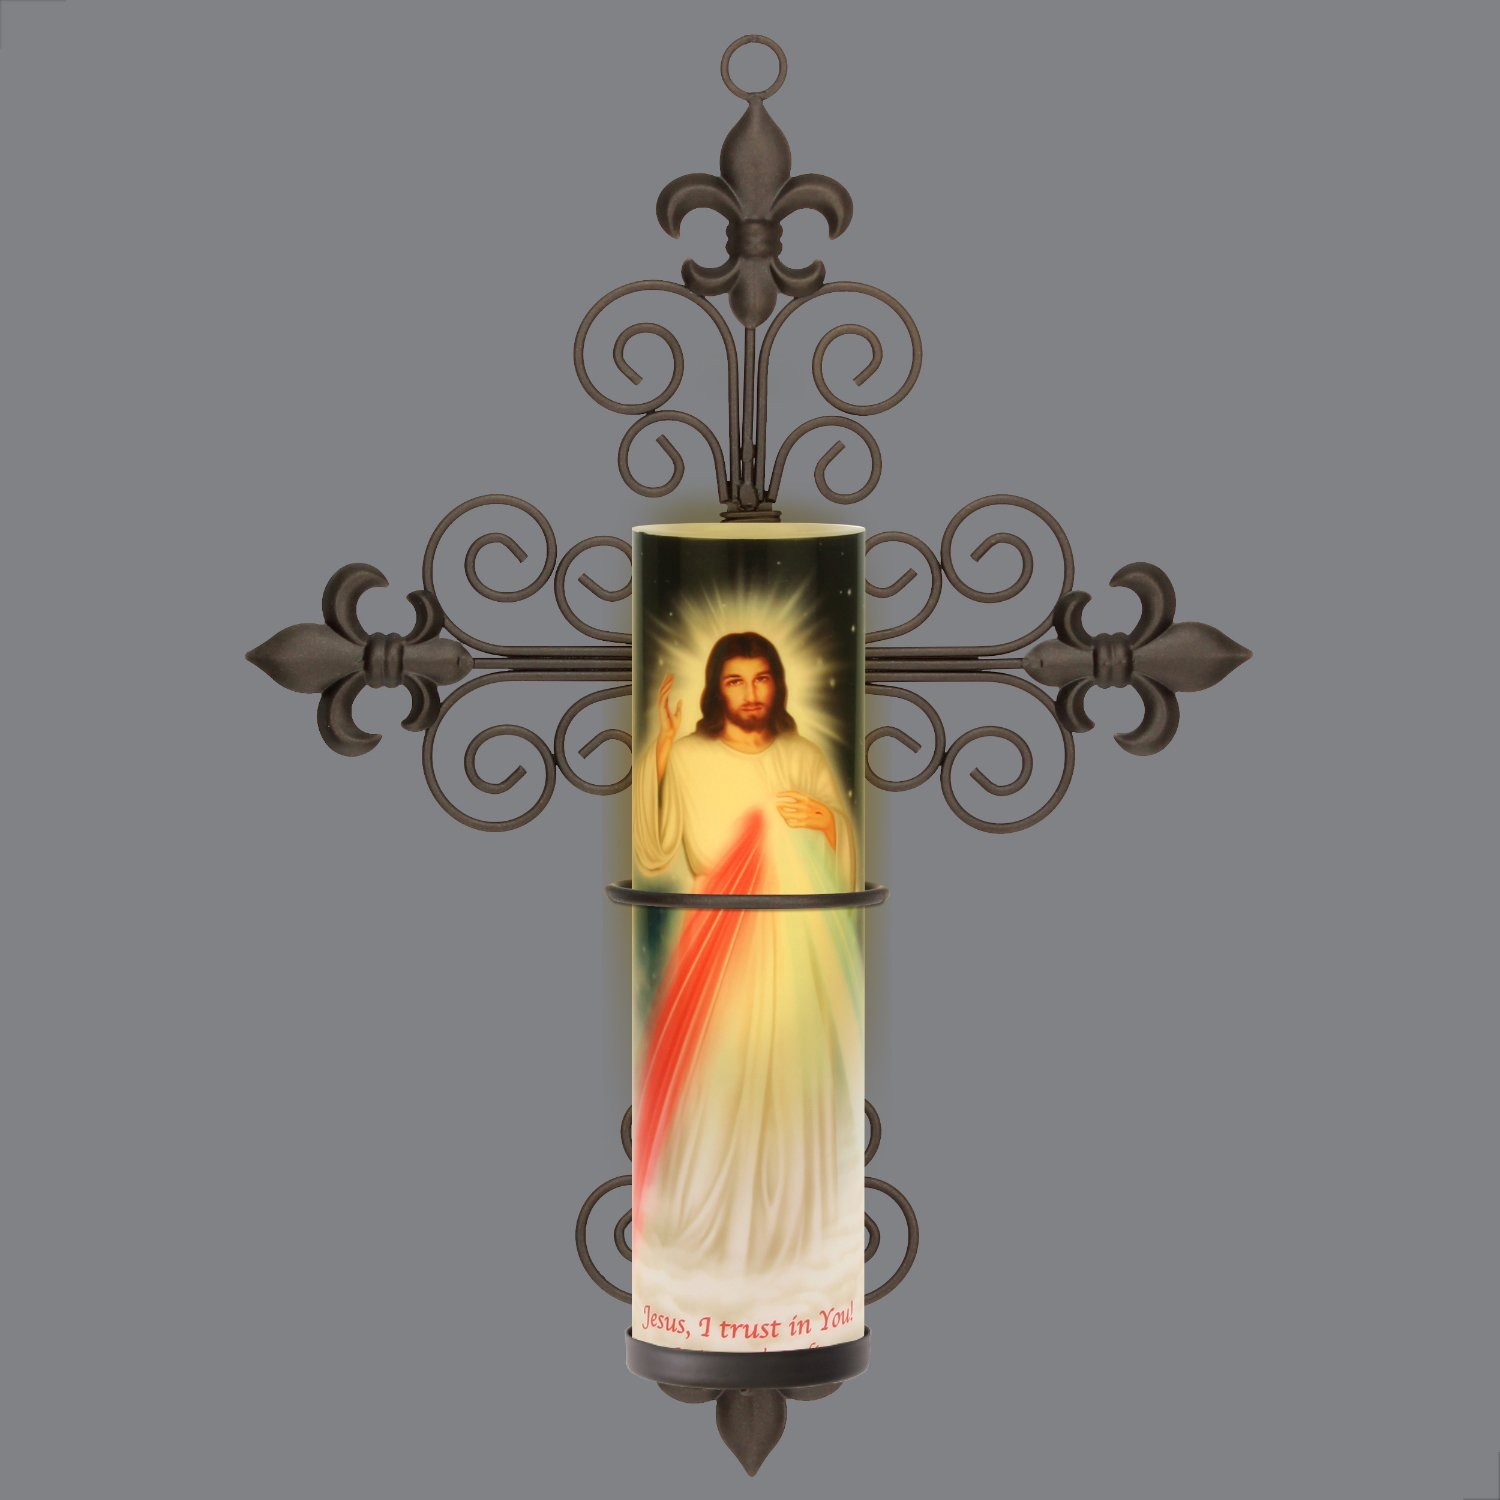 Porn jesus candle topless assian